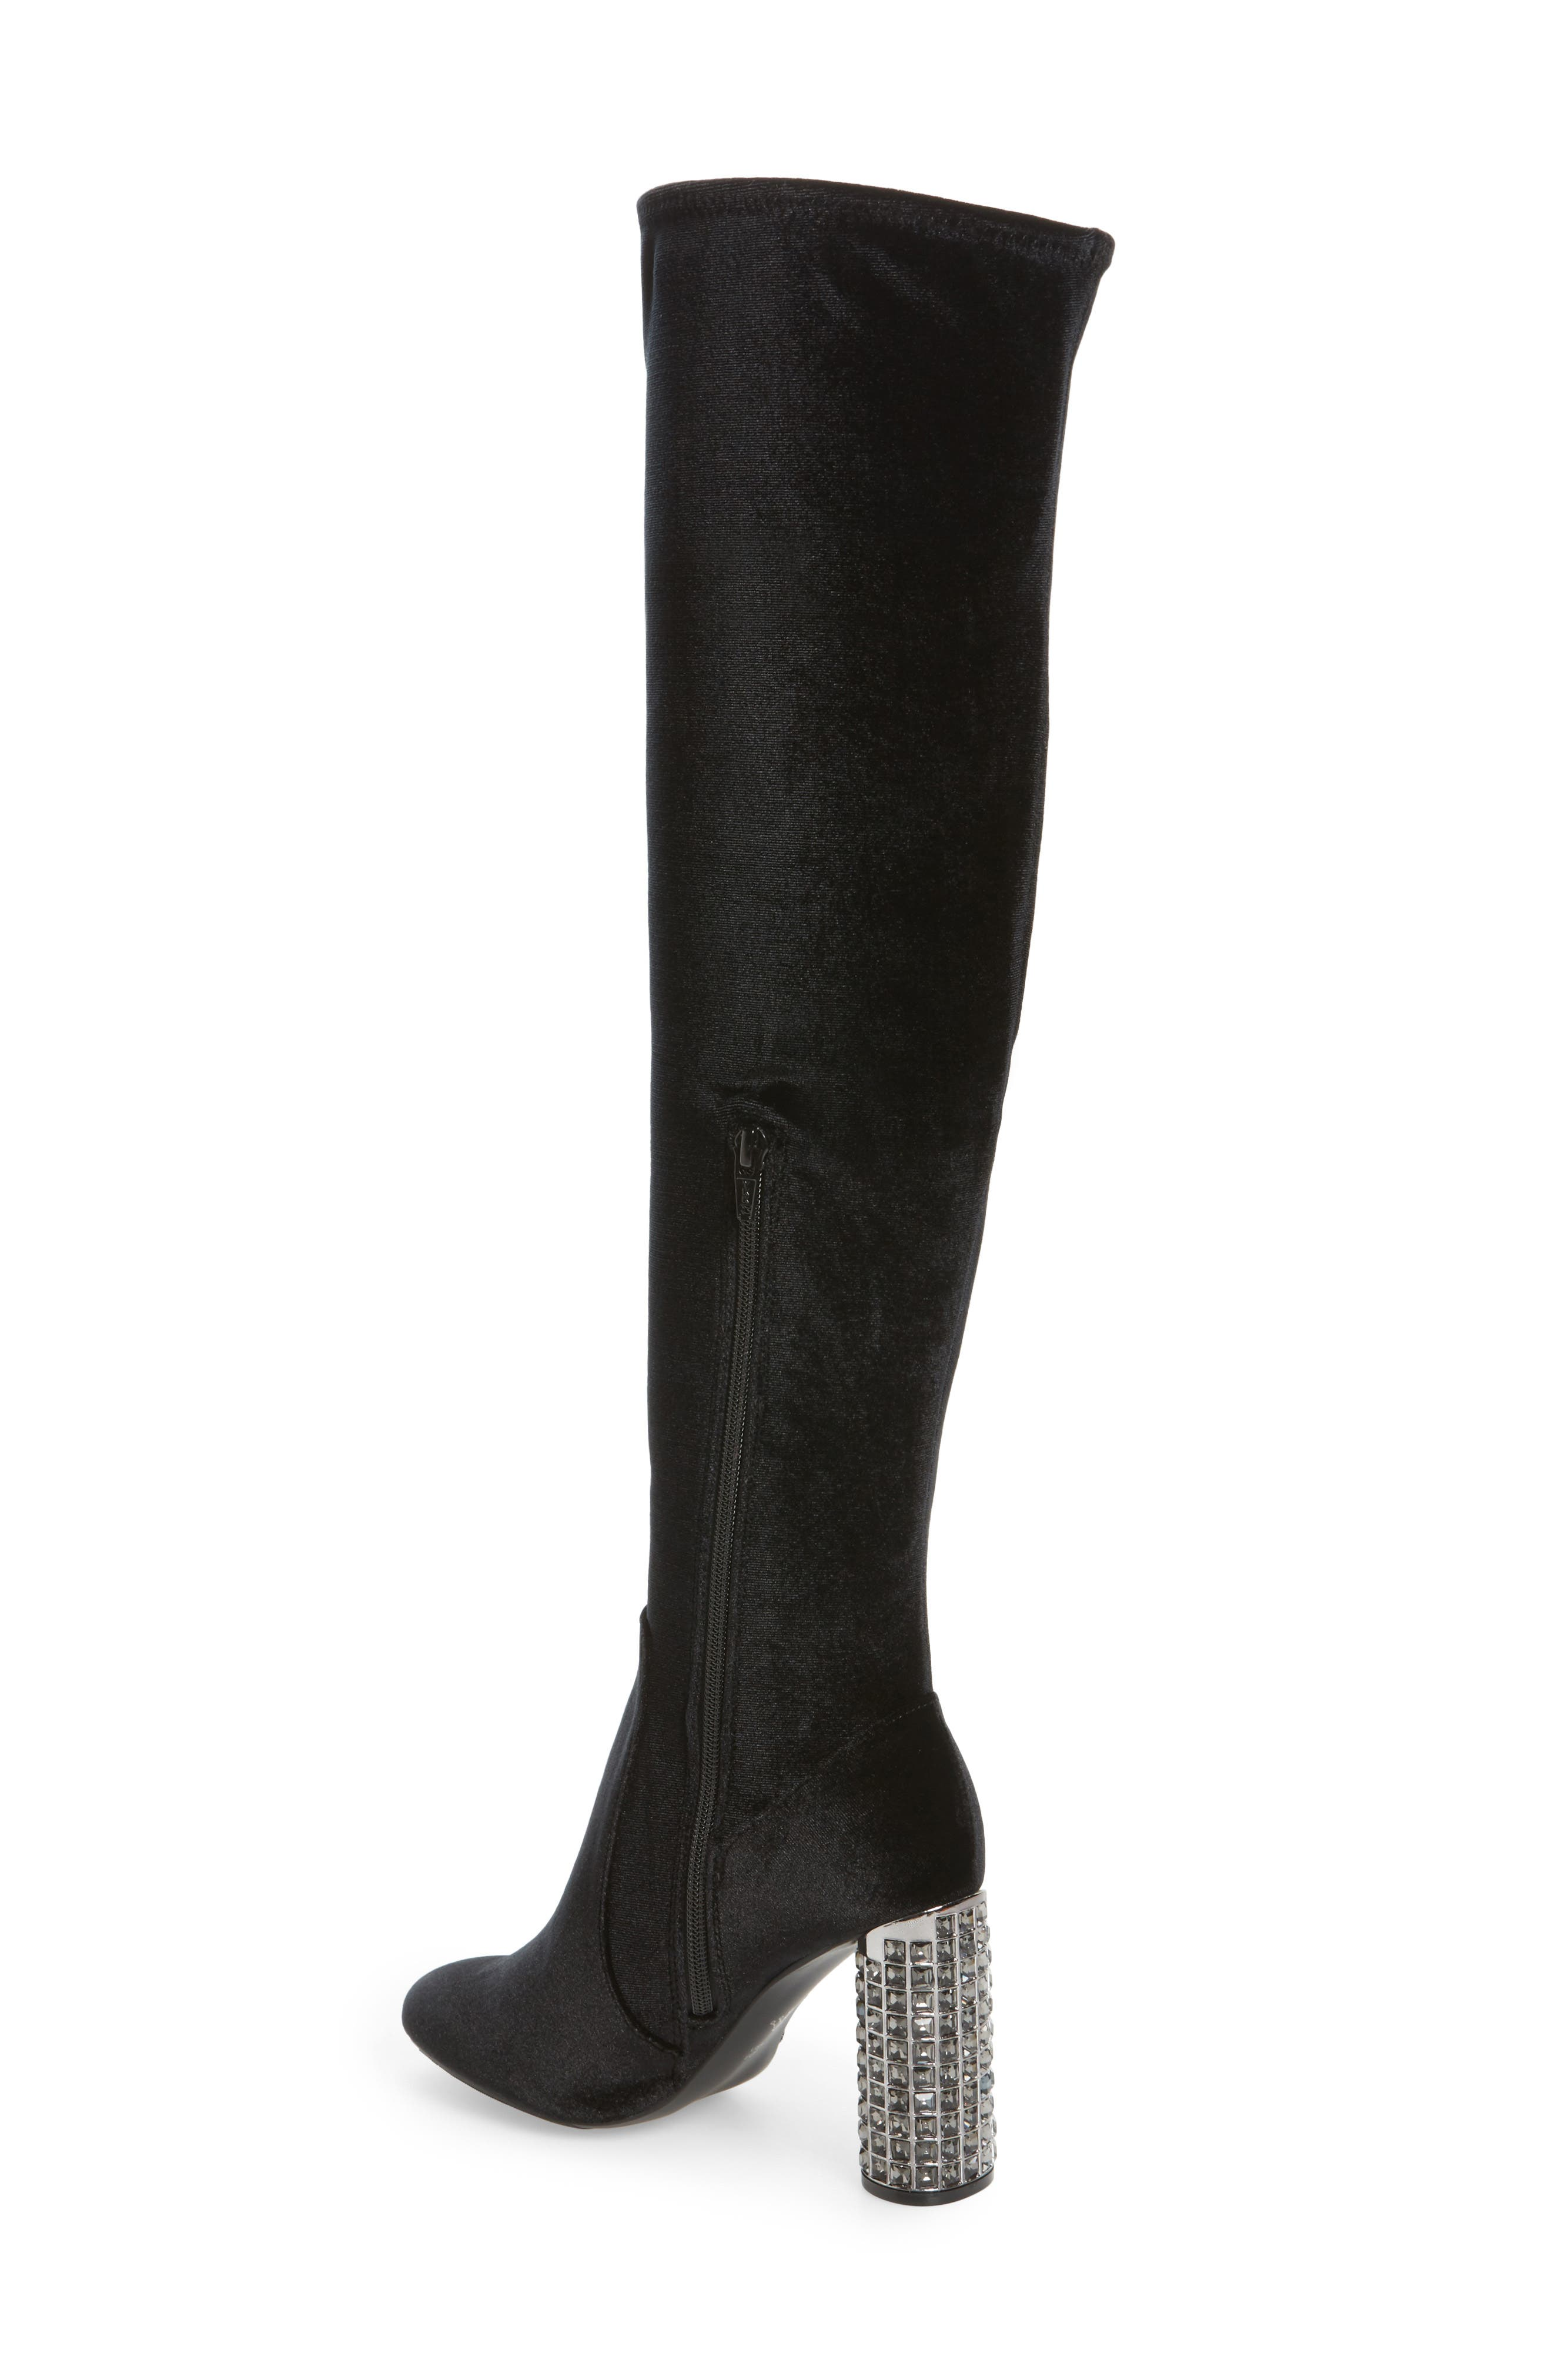 Itzela Over the Knee Boot,                             Alternate thumbnail 2, color,                             003